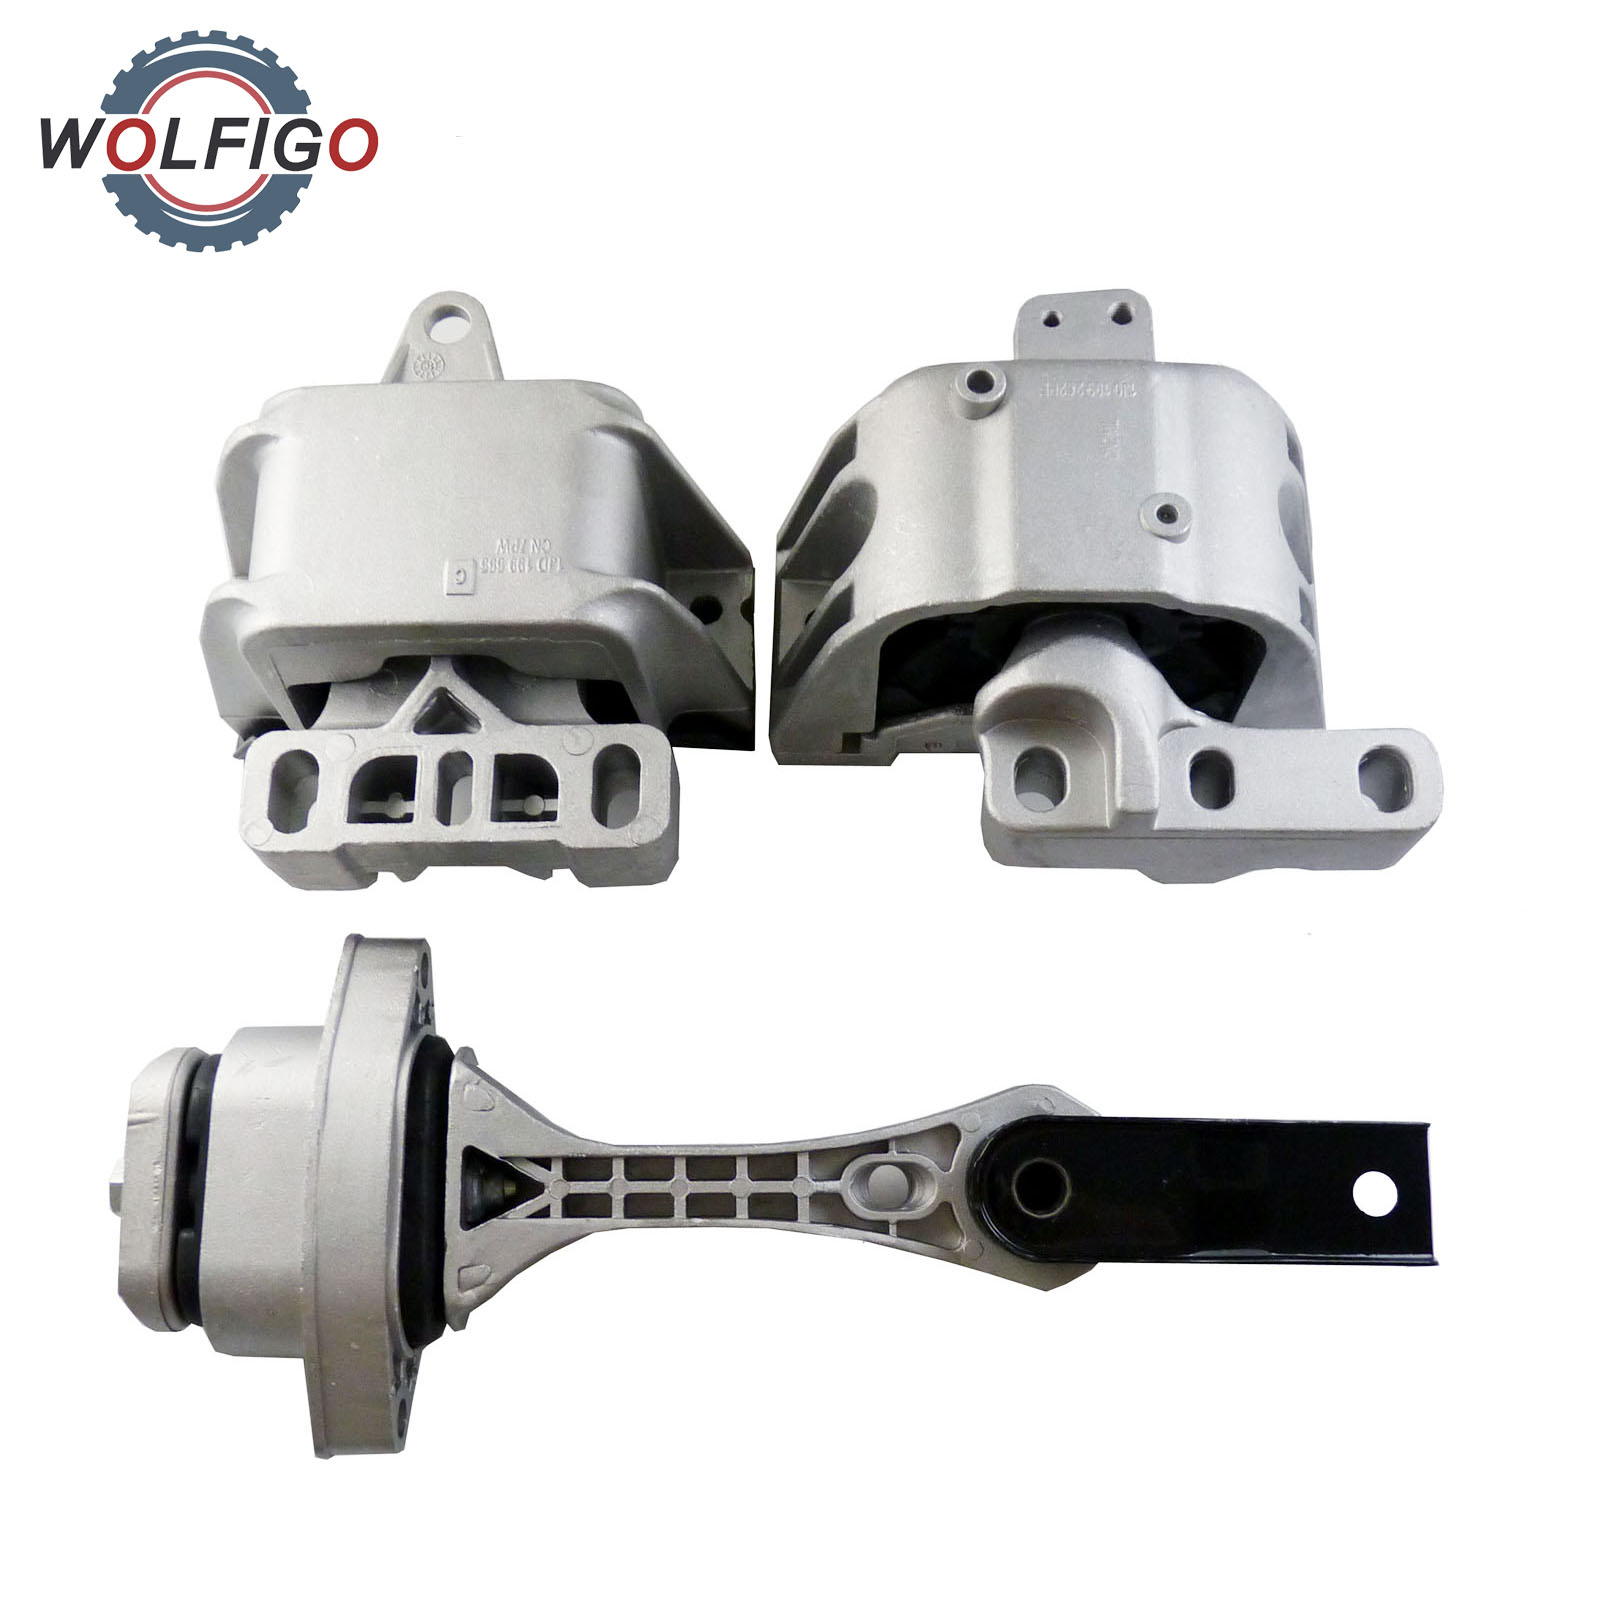 WOLFIGO Set 3PCS Motor & Trans. Mount Front Left Right and Right Rear Set for 1998 2006 Volkswagen Beetle Golf Jetta 1.8L 2.0L-in Motor Mounts from Automobiles & Motorcycles    1